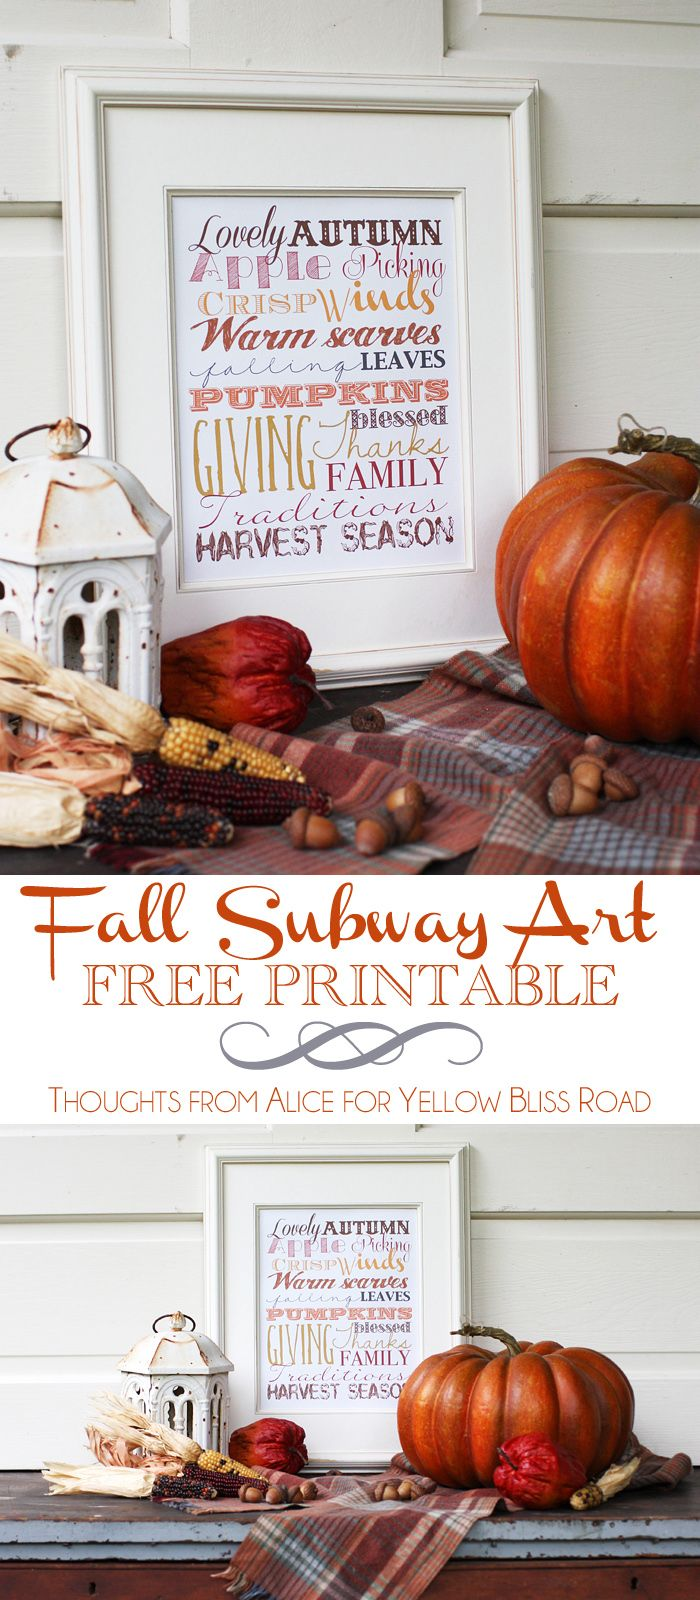 Fall Subway Art Free Printable! This will look great with all your fun fall decor!